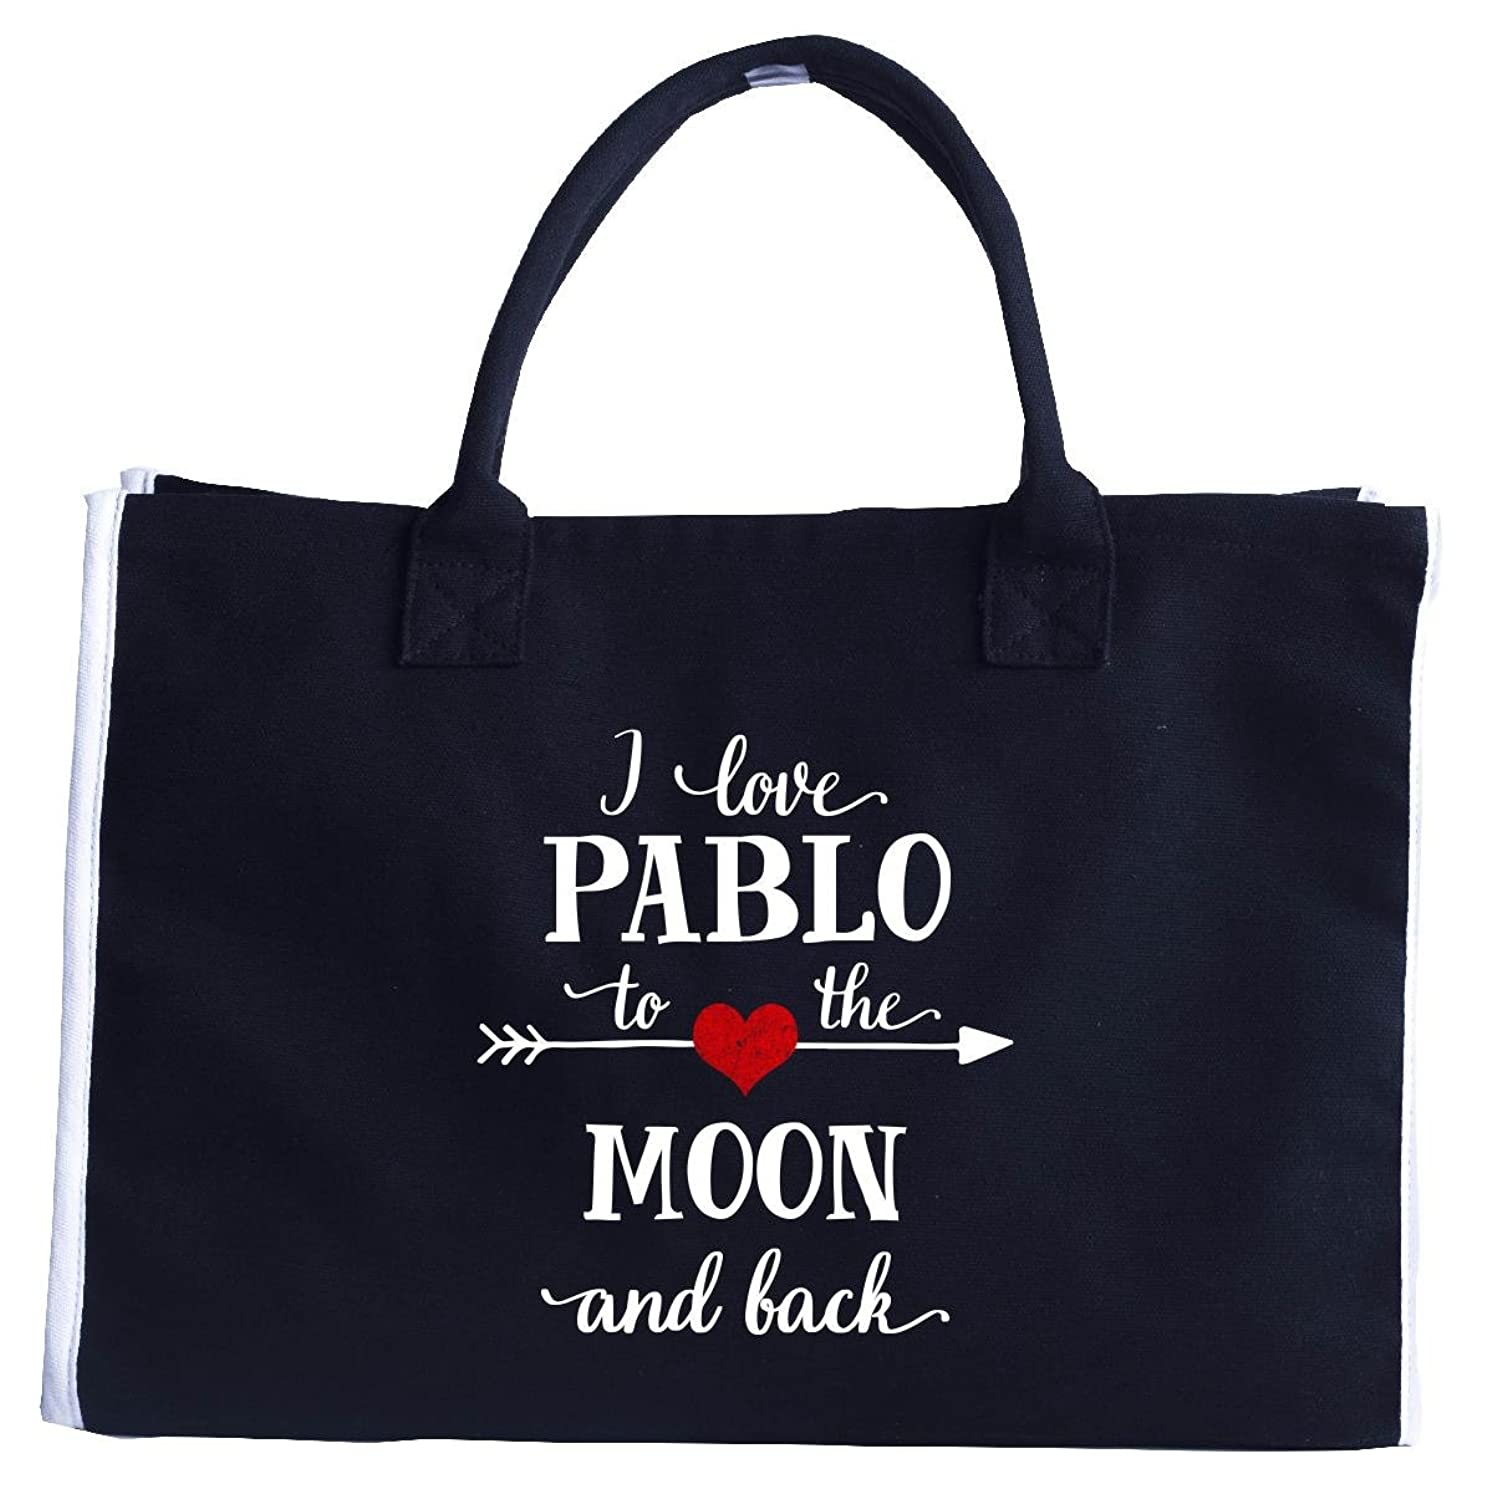 I Love Pablo To The Moon And Back.gift For Girlfriend - Fashion Tote Bag